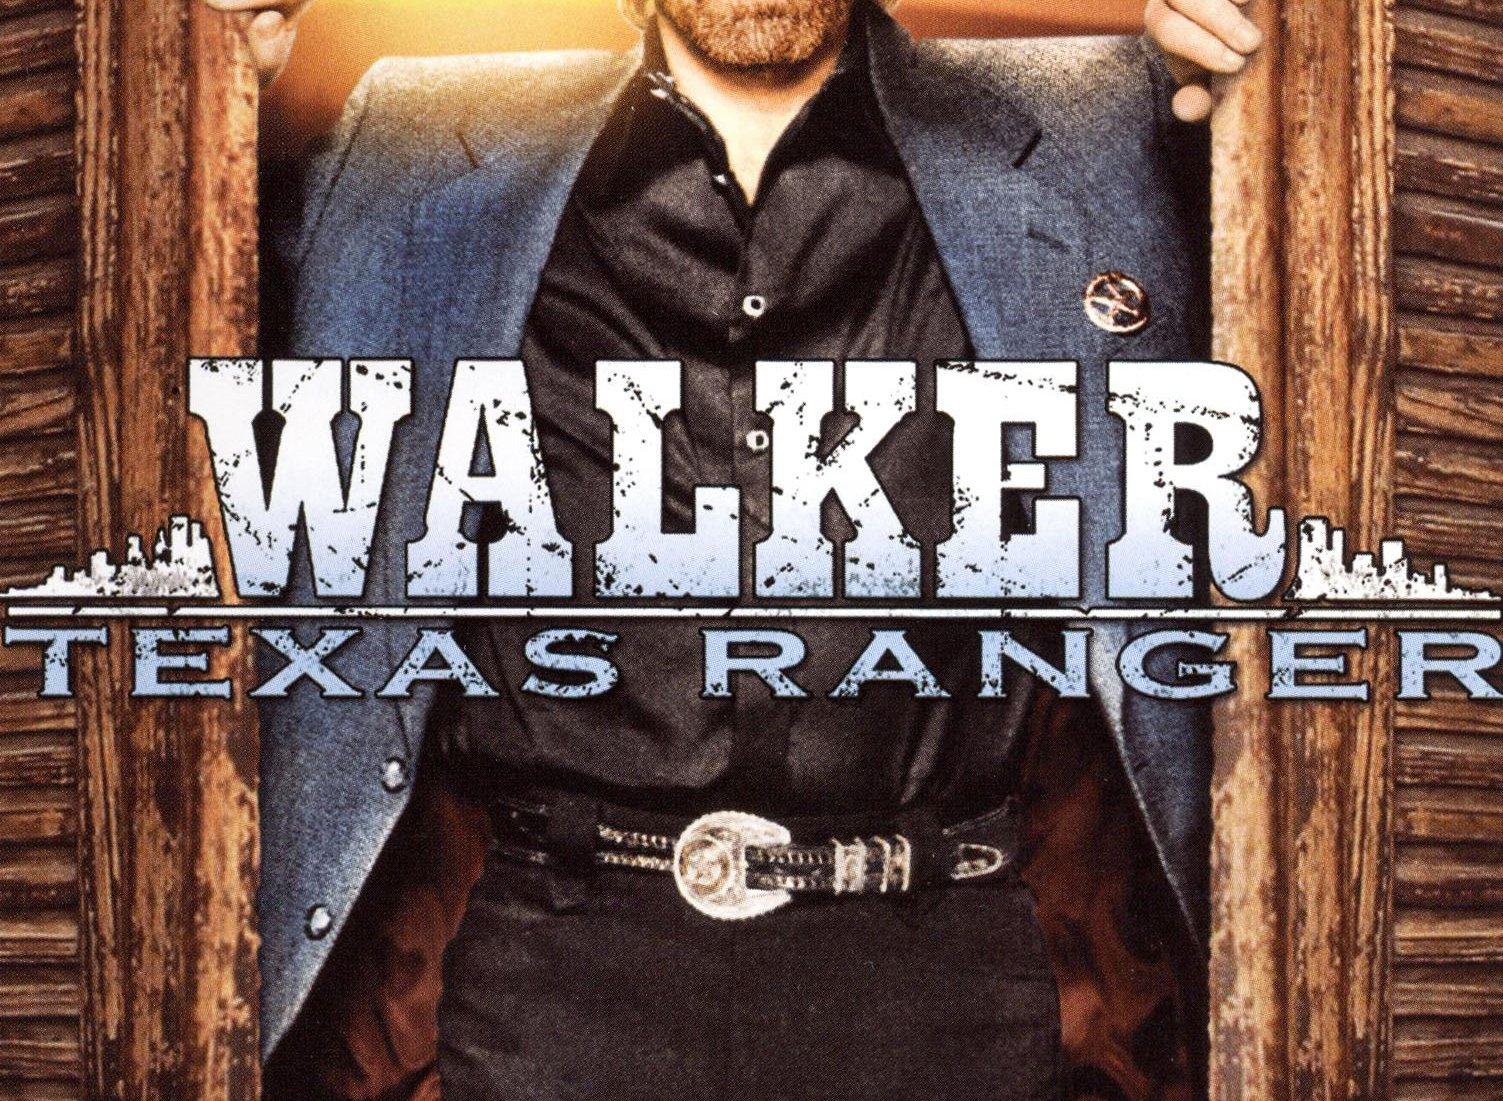 The Walker, Texas Ranger Reboot: First Look At Jared Padlecki As The New Chuck Norris